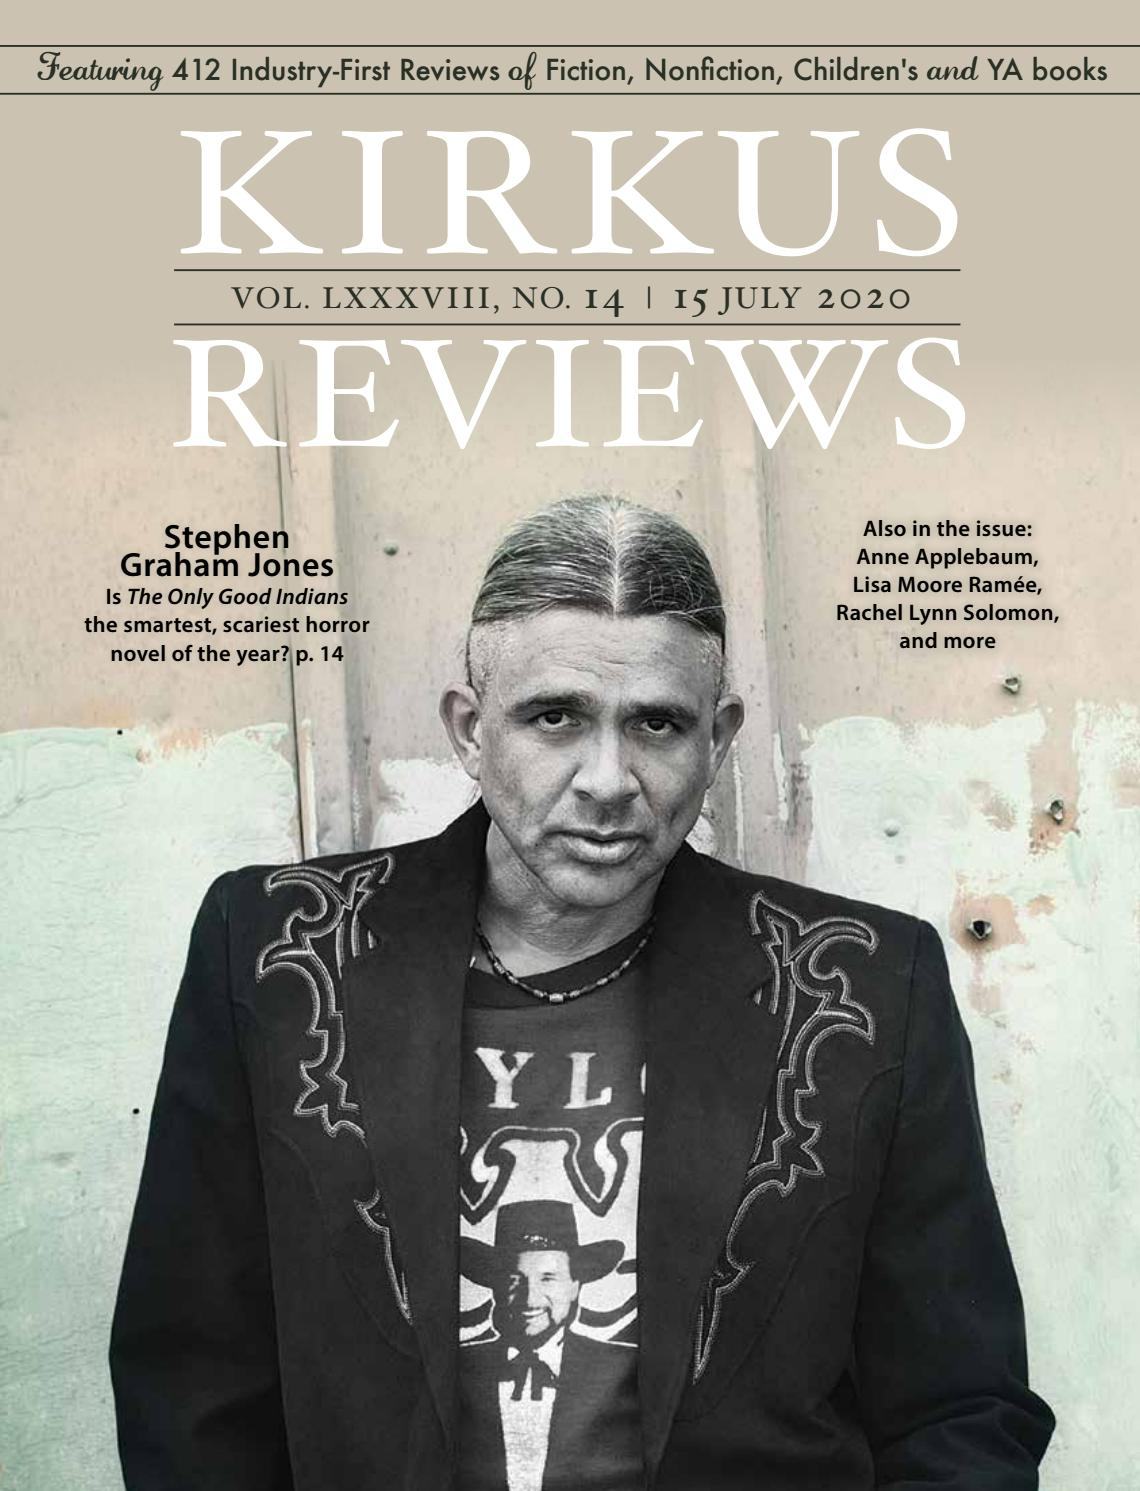 July 15, 2020: Volume LXXXVIII, No 14 by Kirkus Reviews - issuu